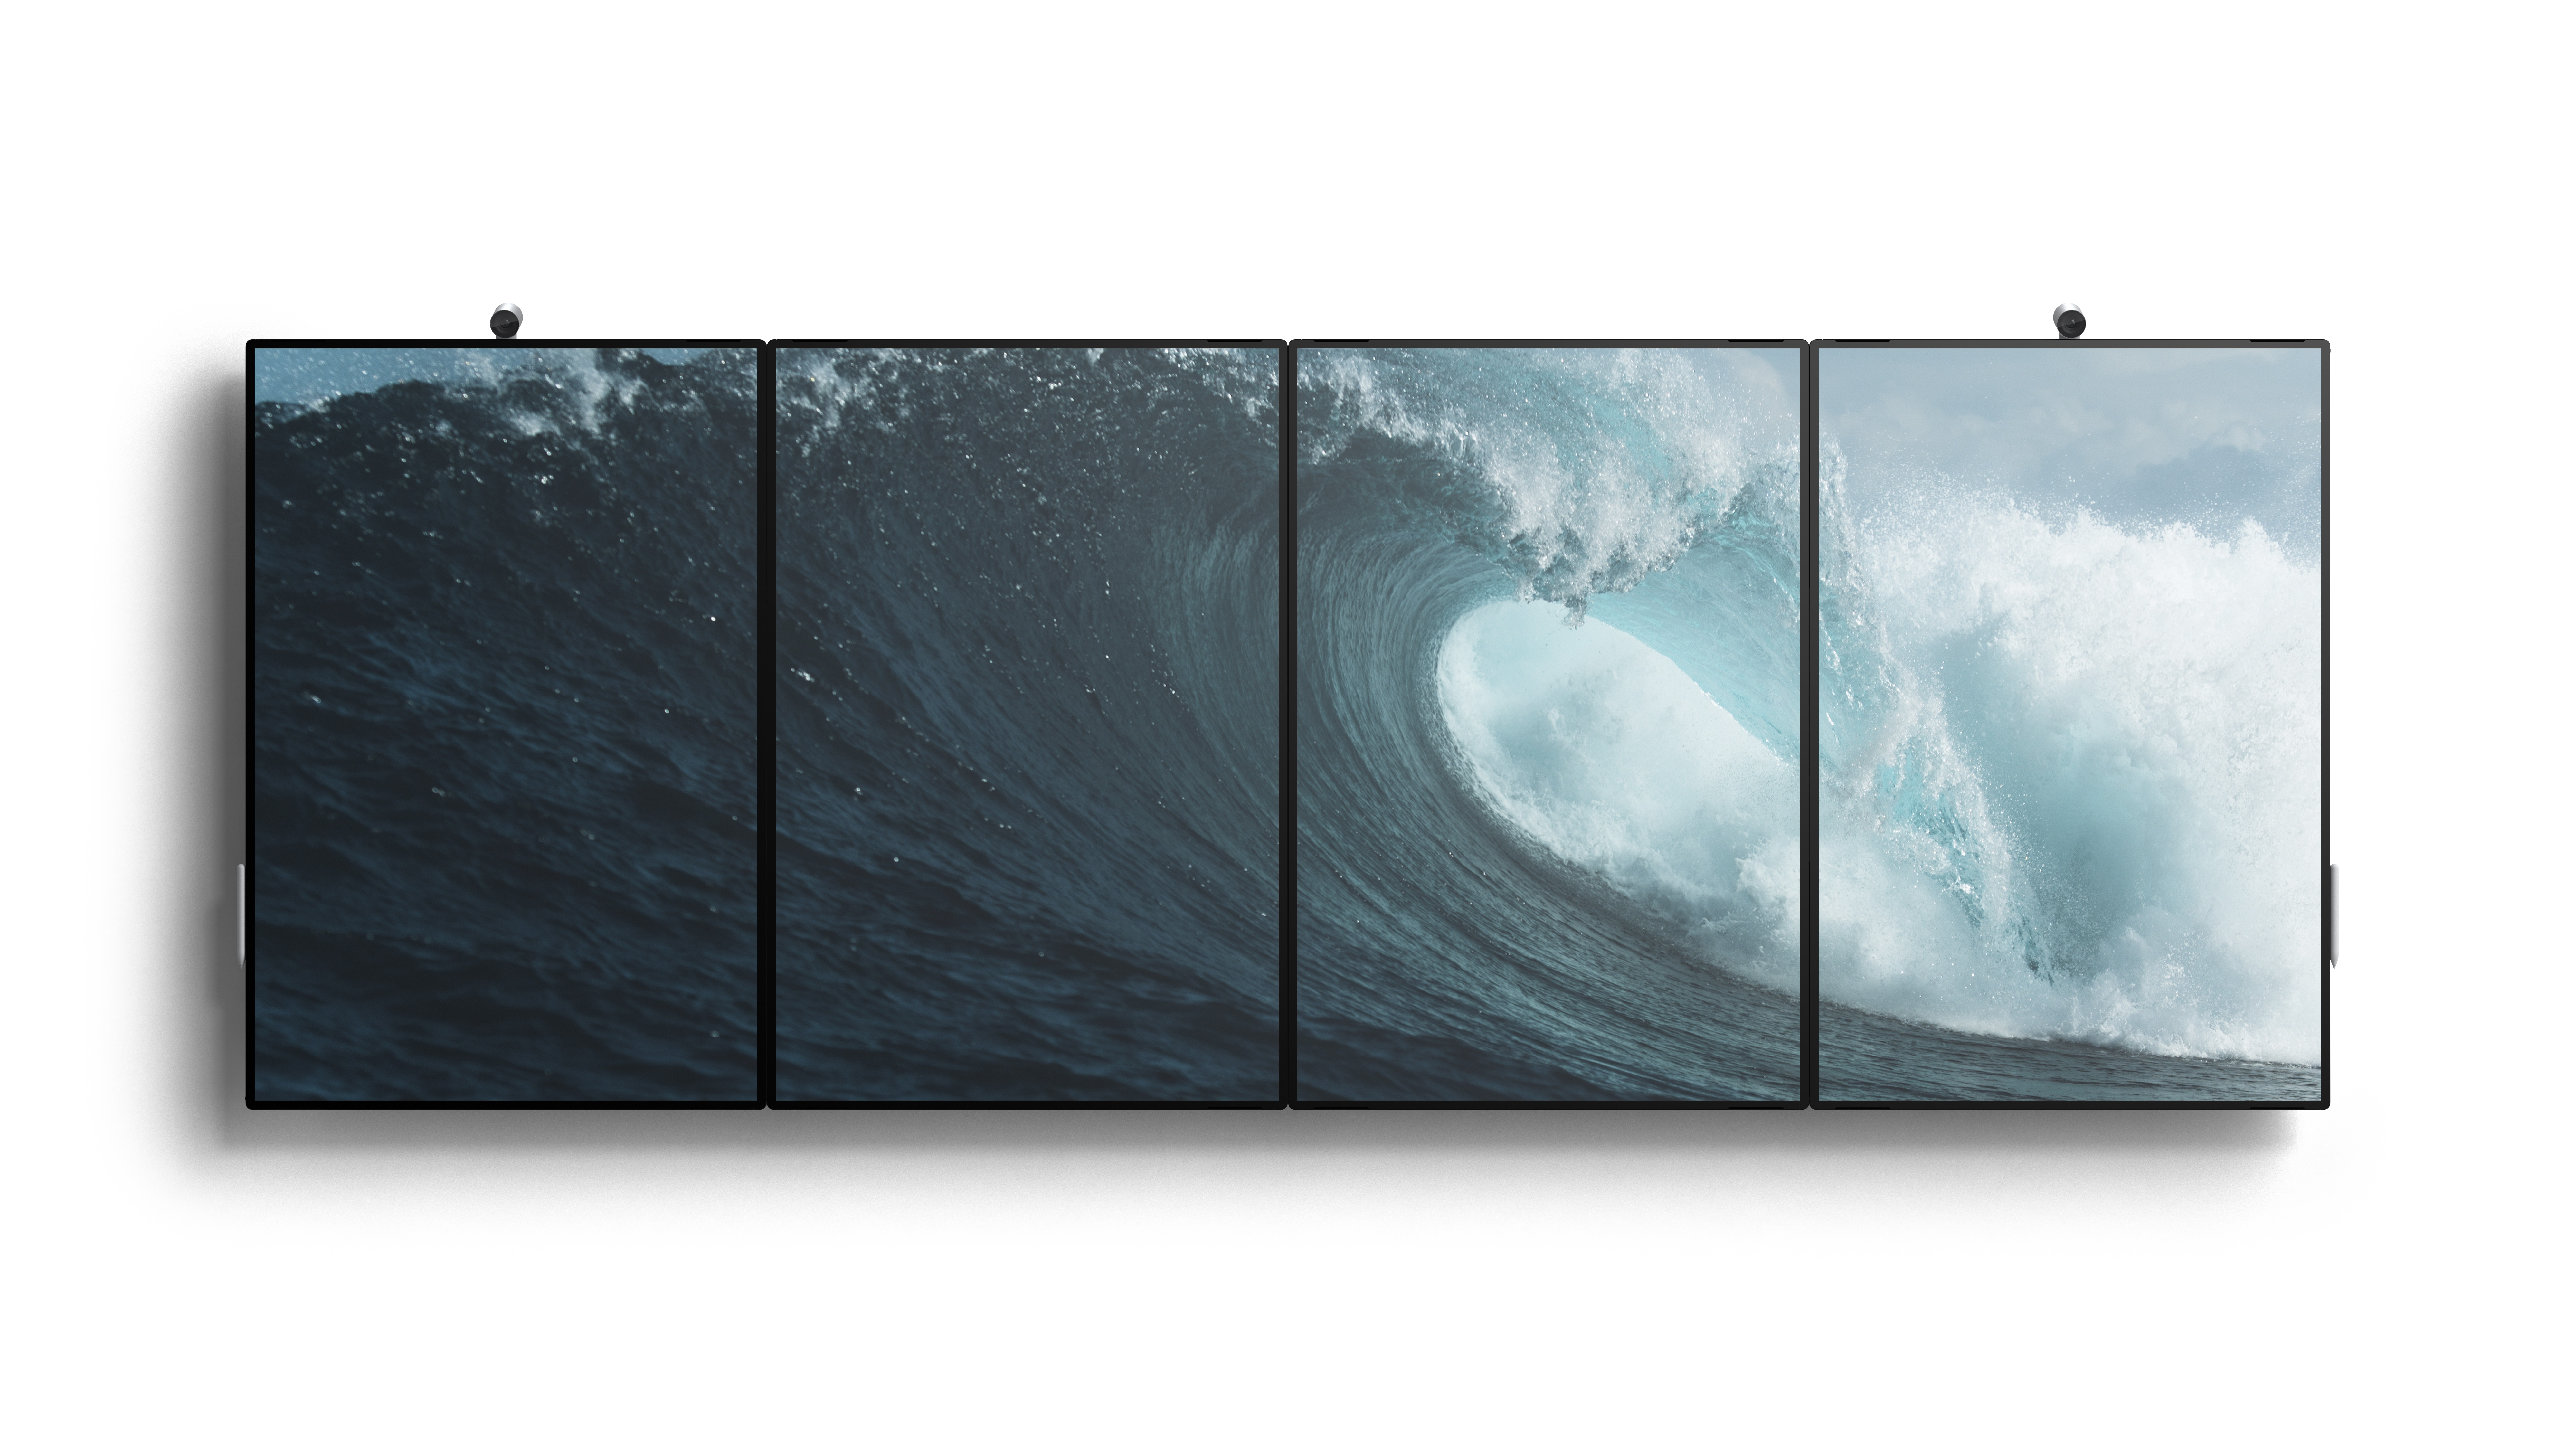 Microsoft S Surface Hub 2 Is Designed For An Office Of The